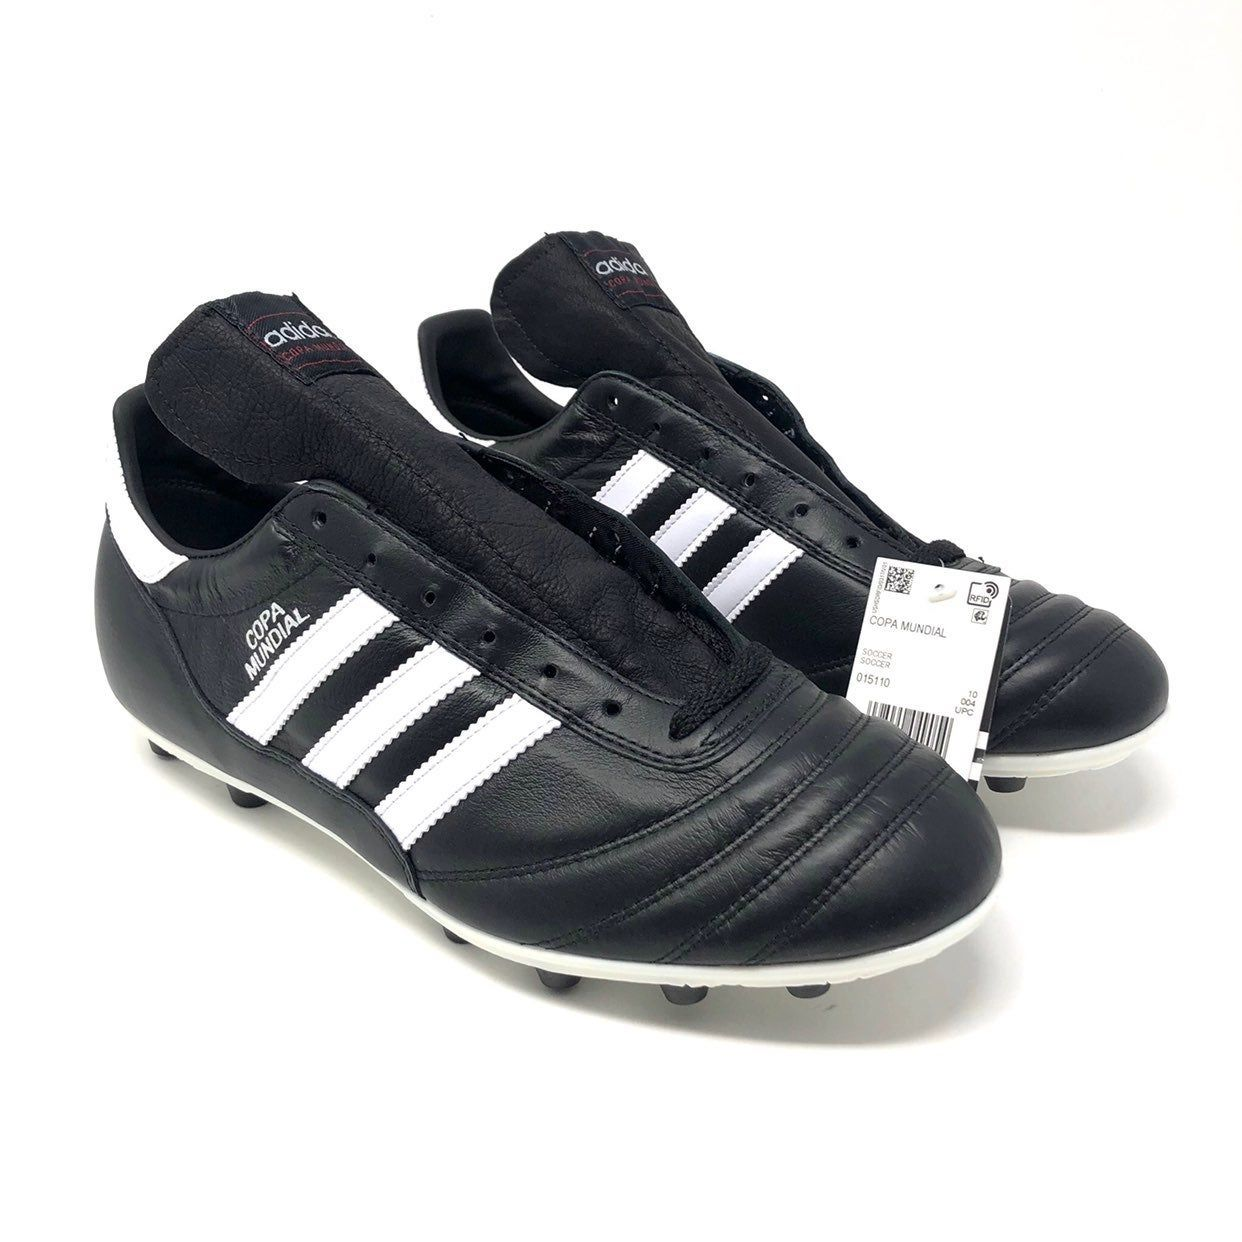 Pin on Adidas Cleats